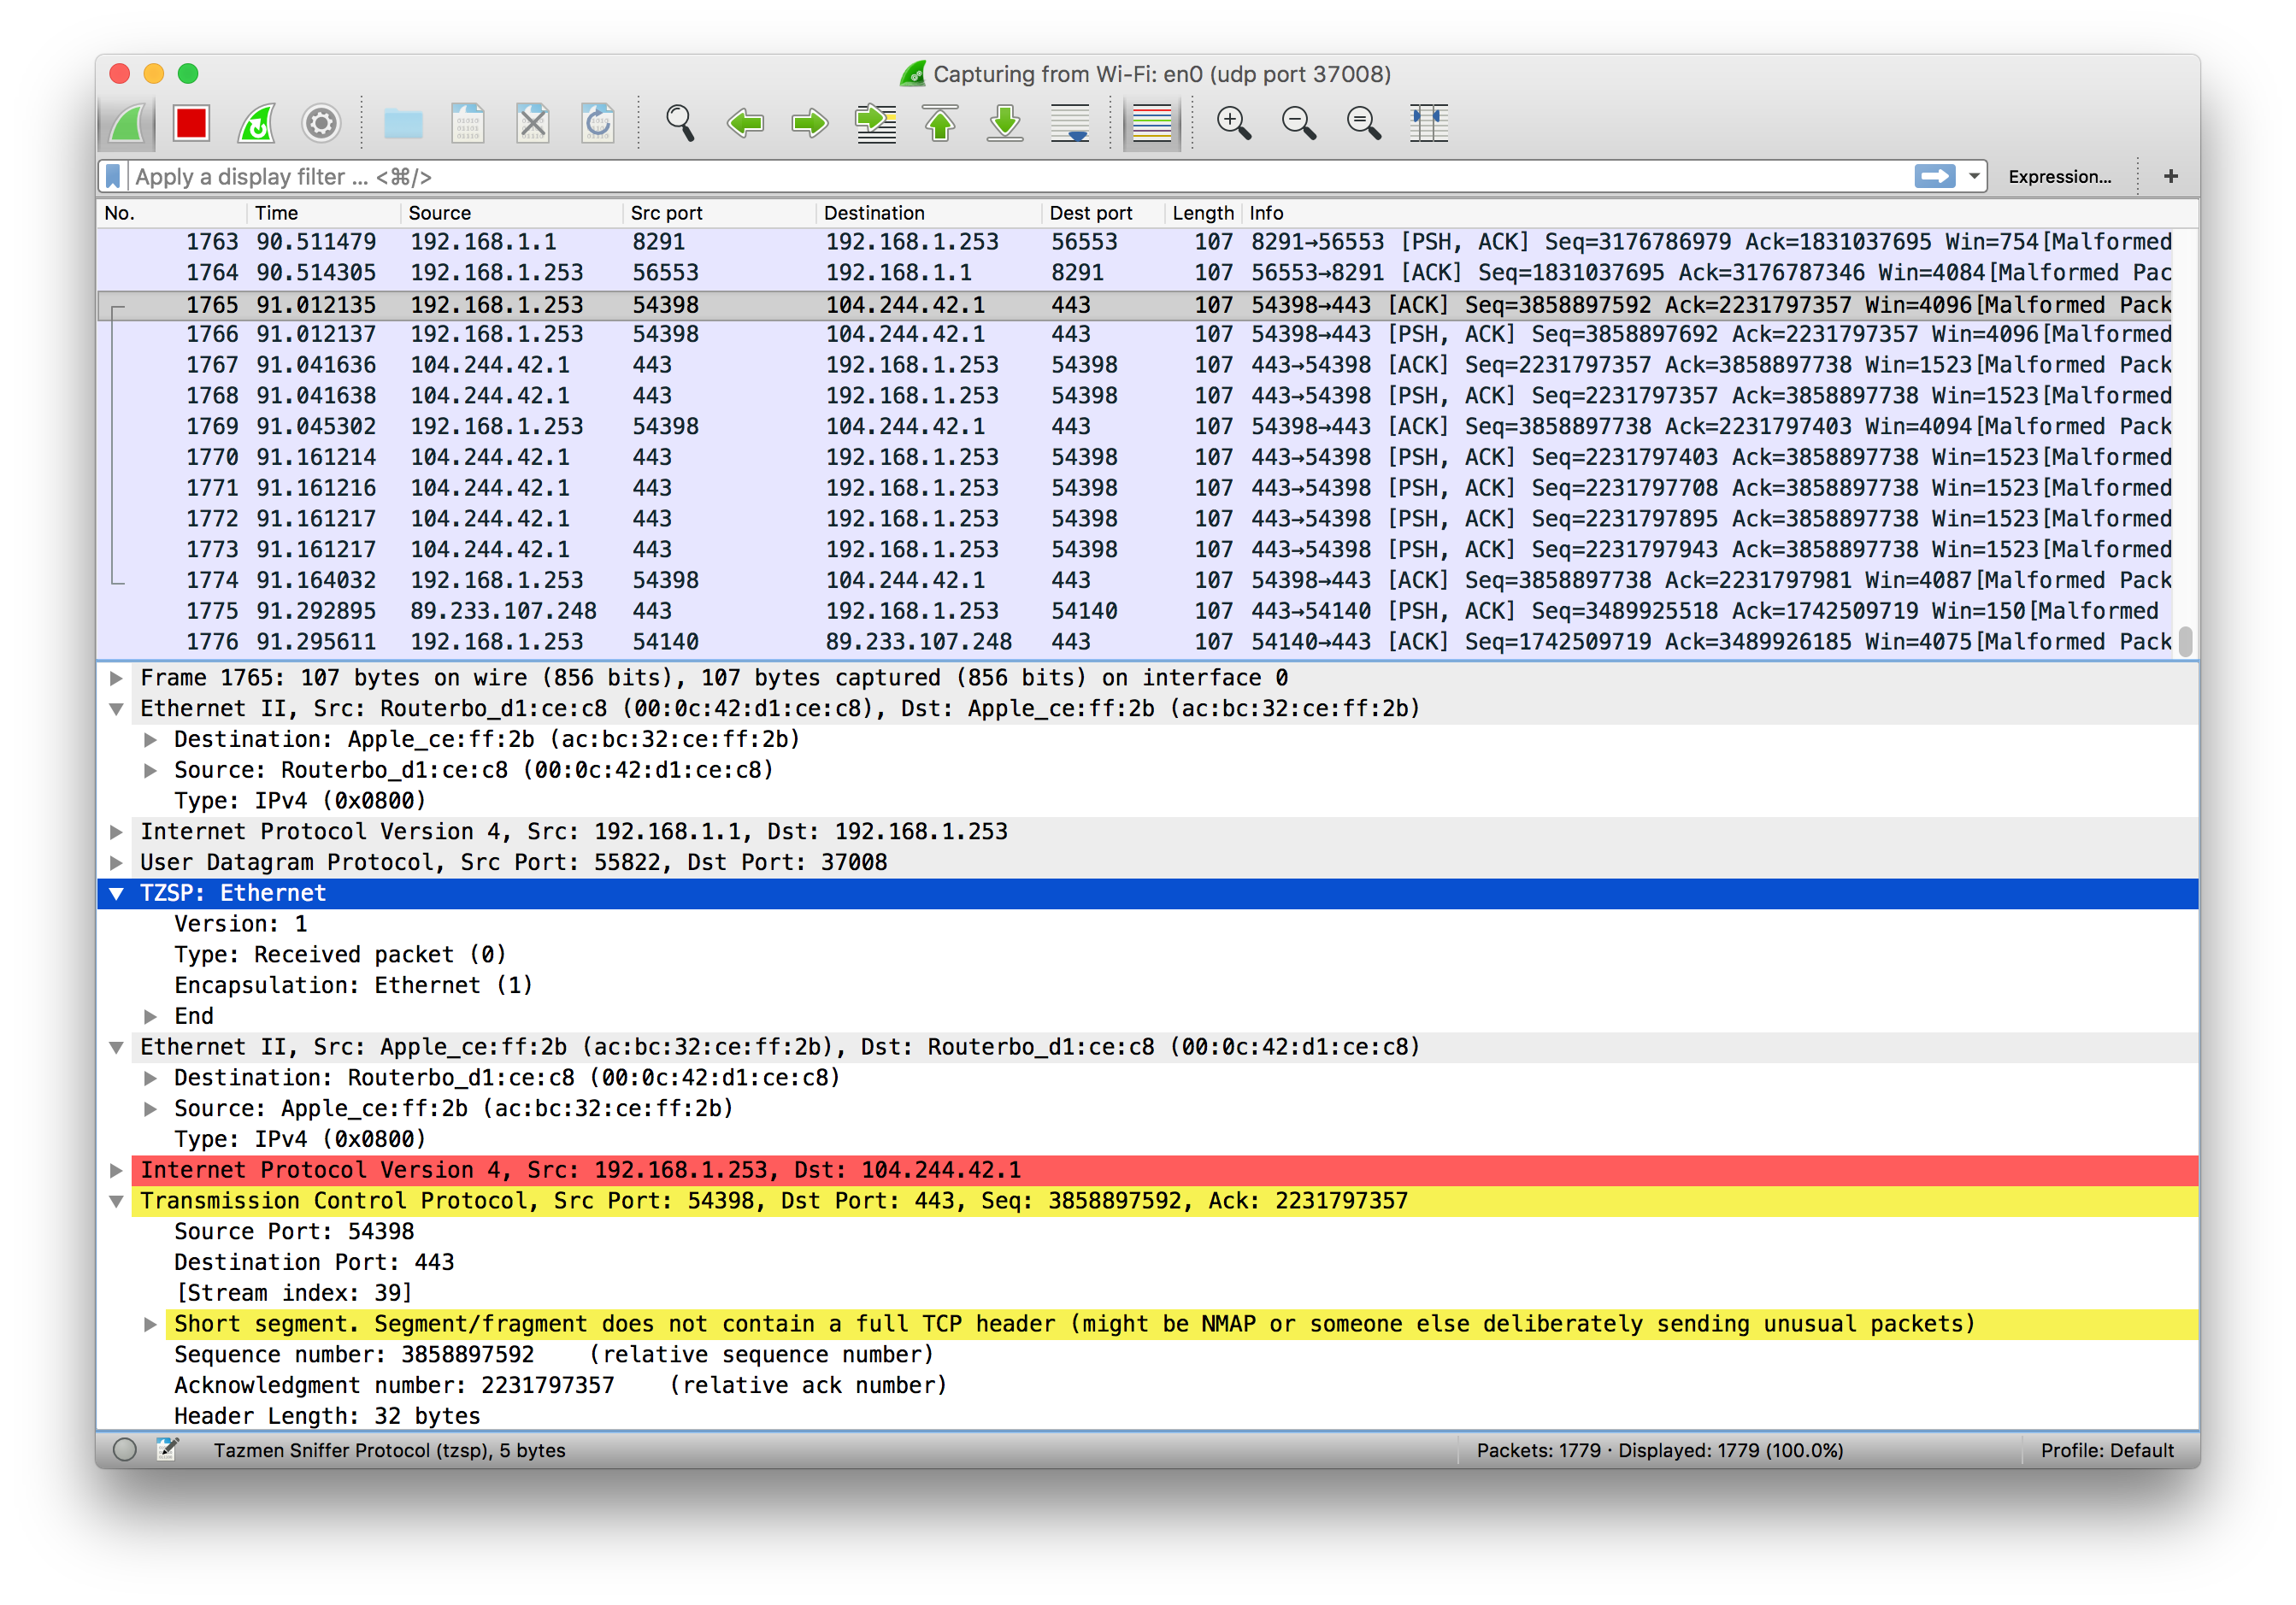 Live packet captures using MikroTik RouterOS and Wireshark